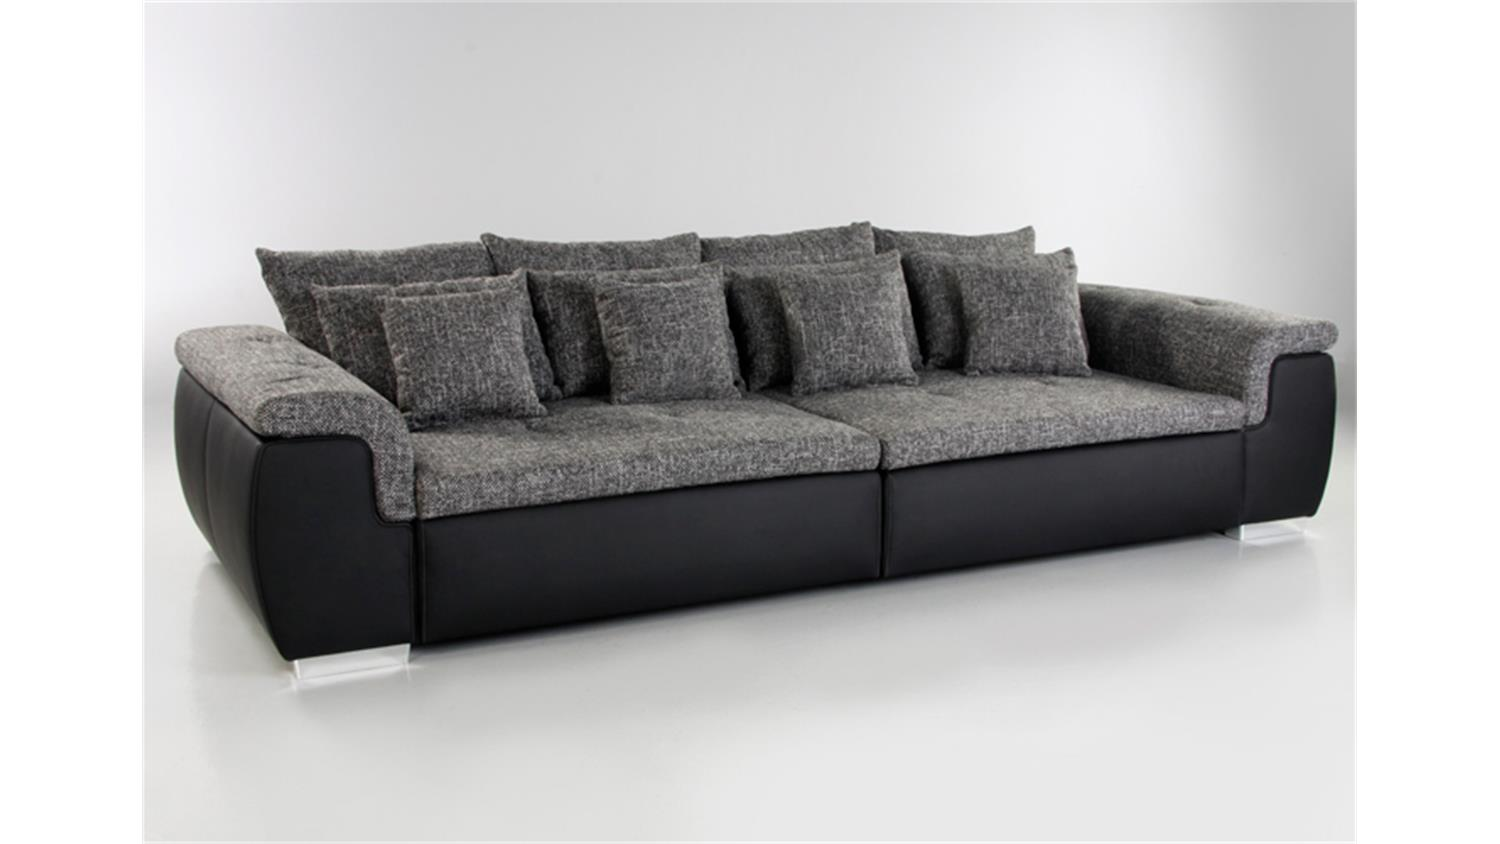 Big and sofa Big sofa hocker